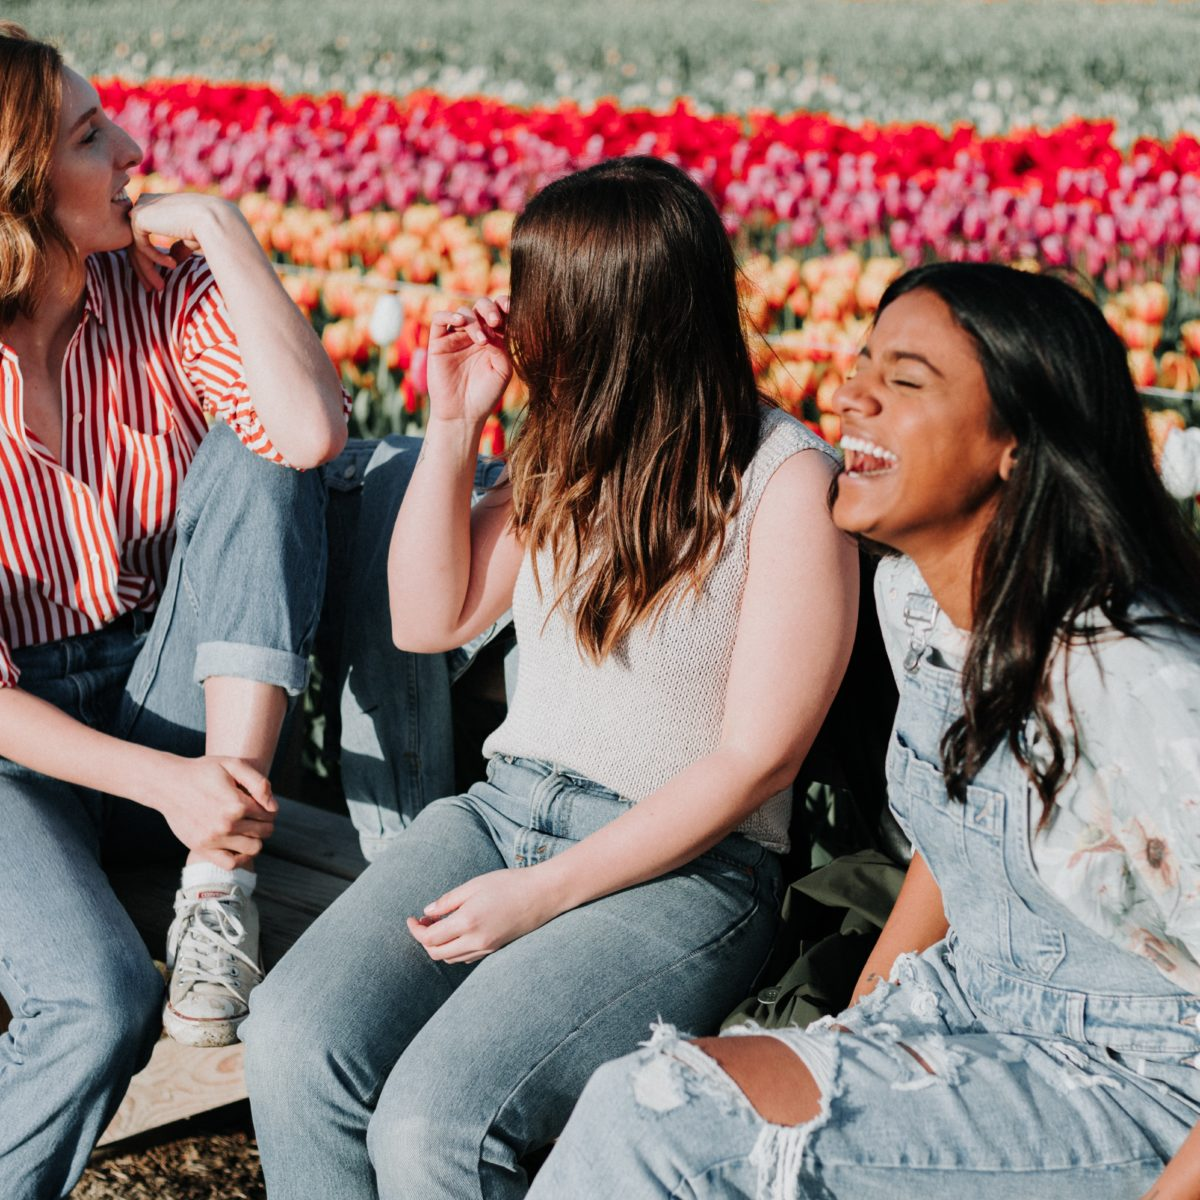 Group of girls laughing in a tulip field.